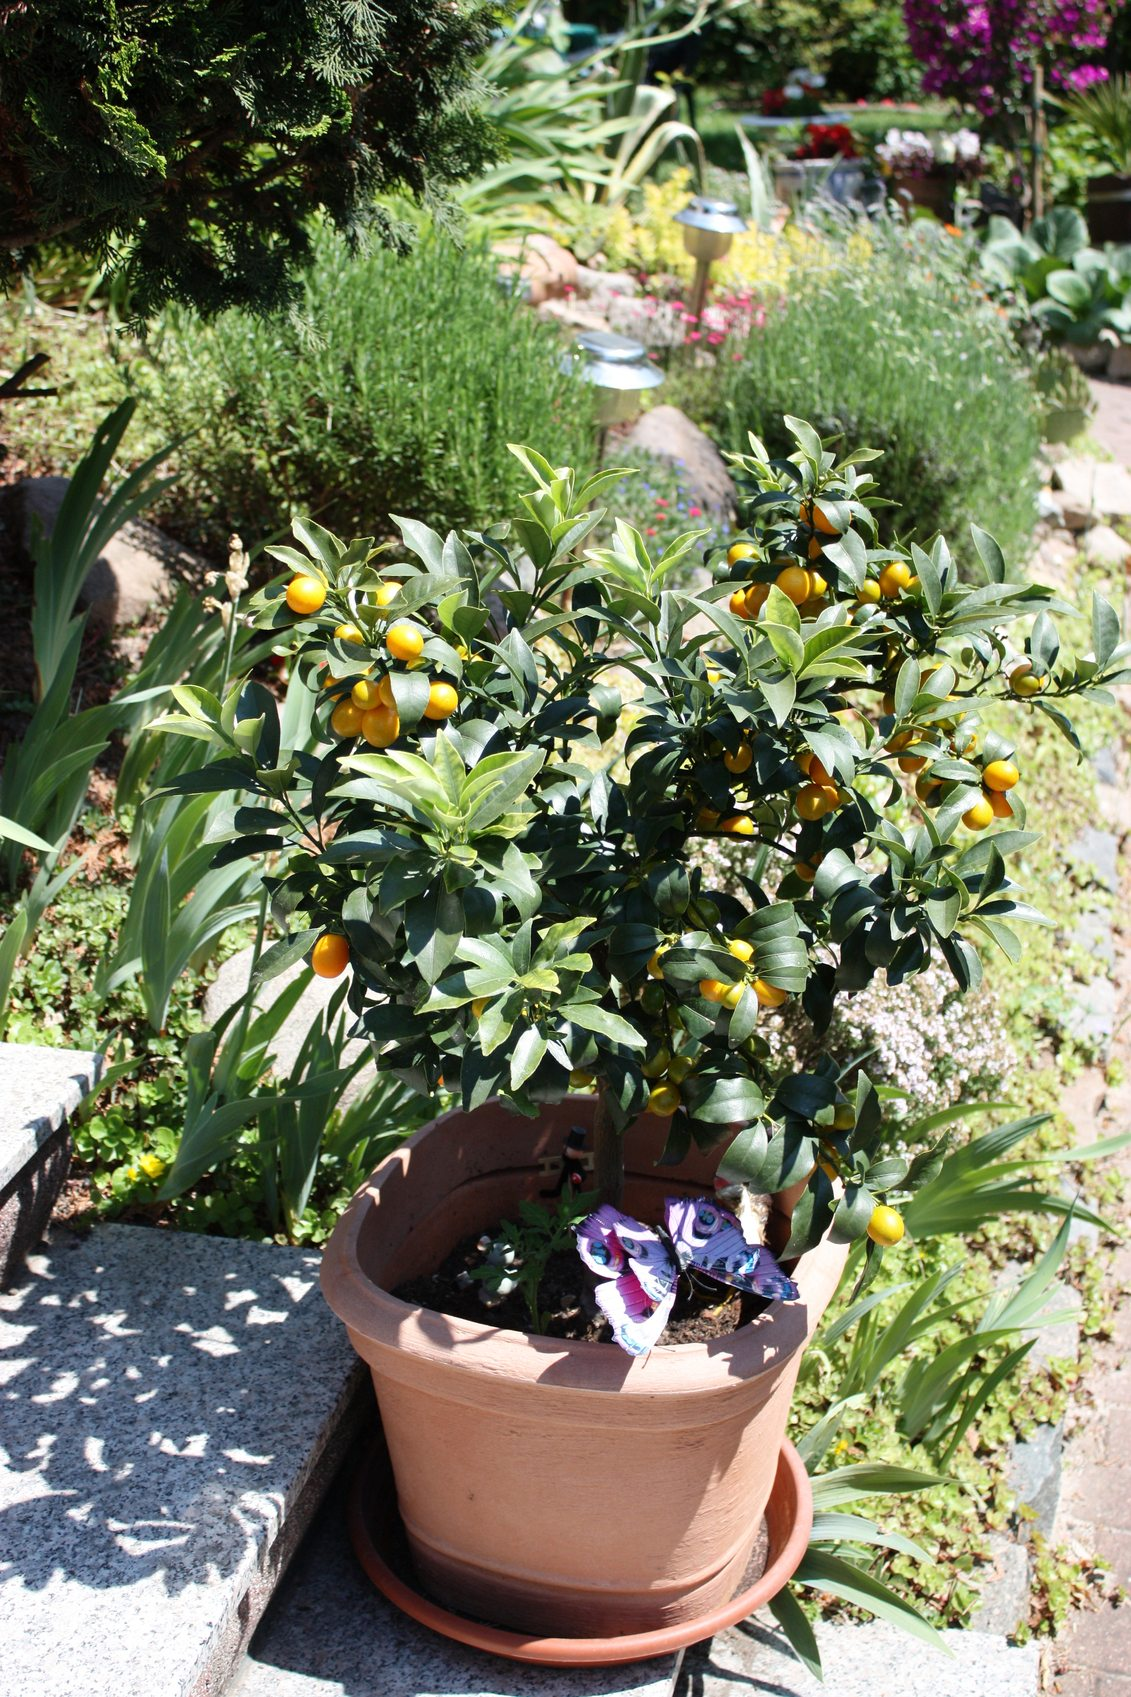 What Grow Well With Fruit: Companion Planting With Fruit Trees